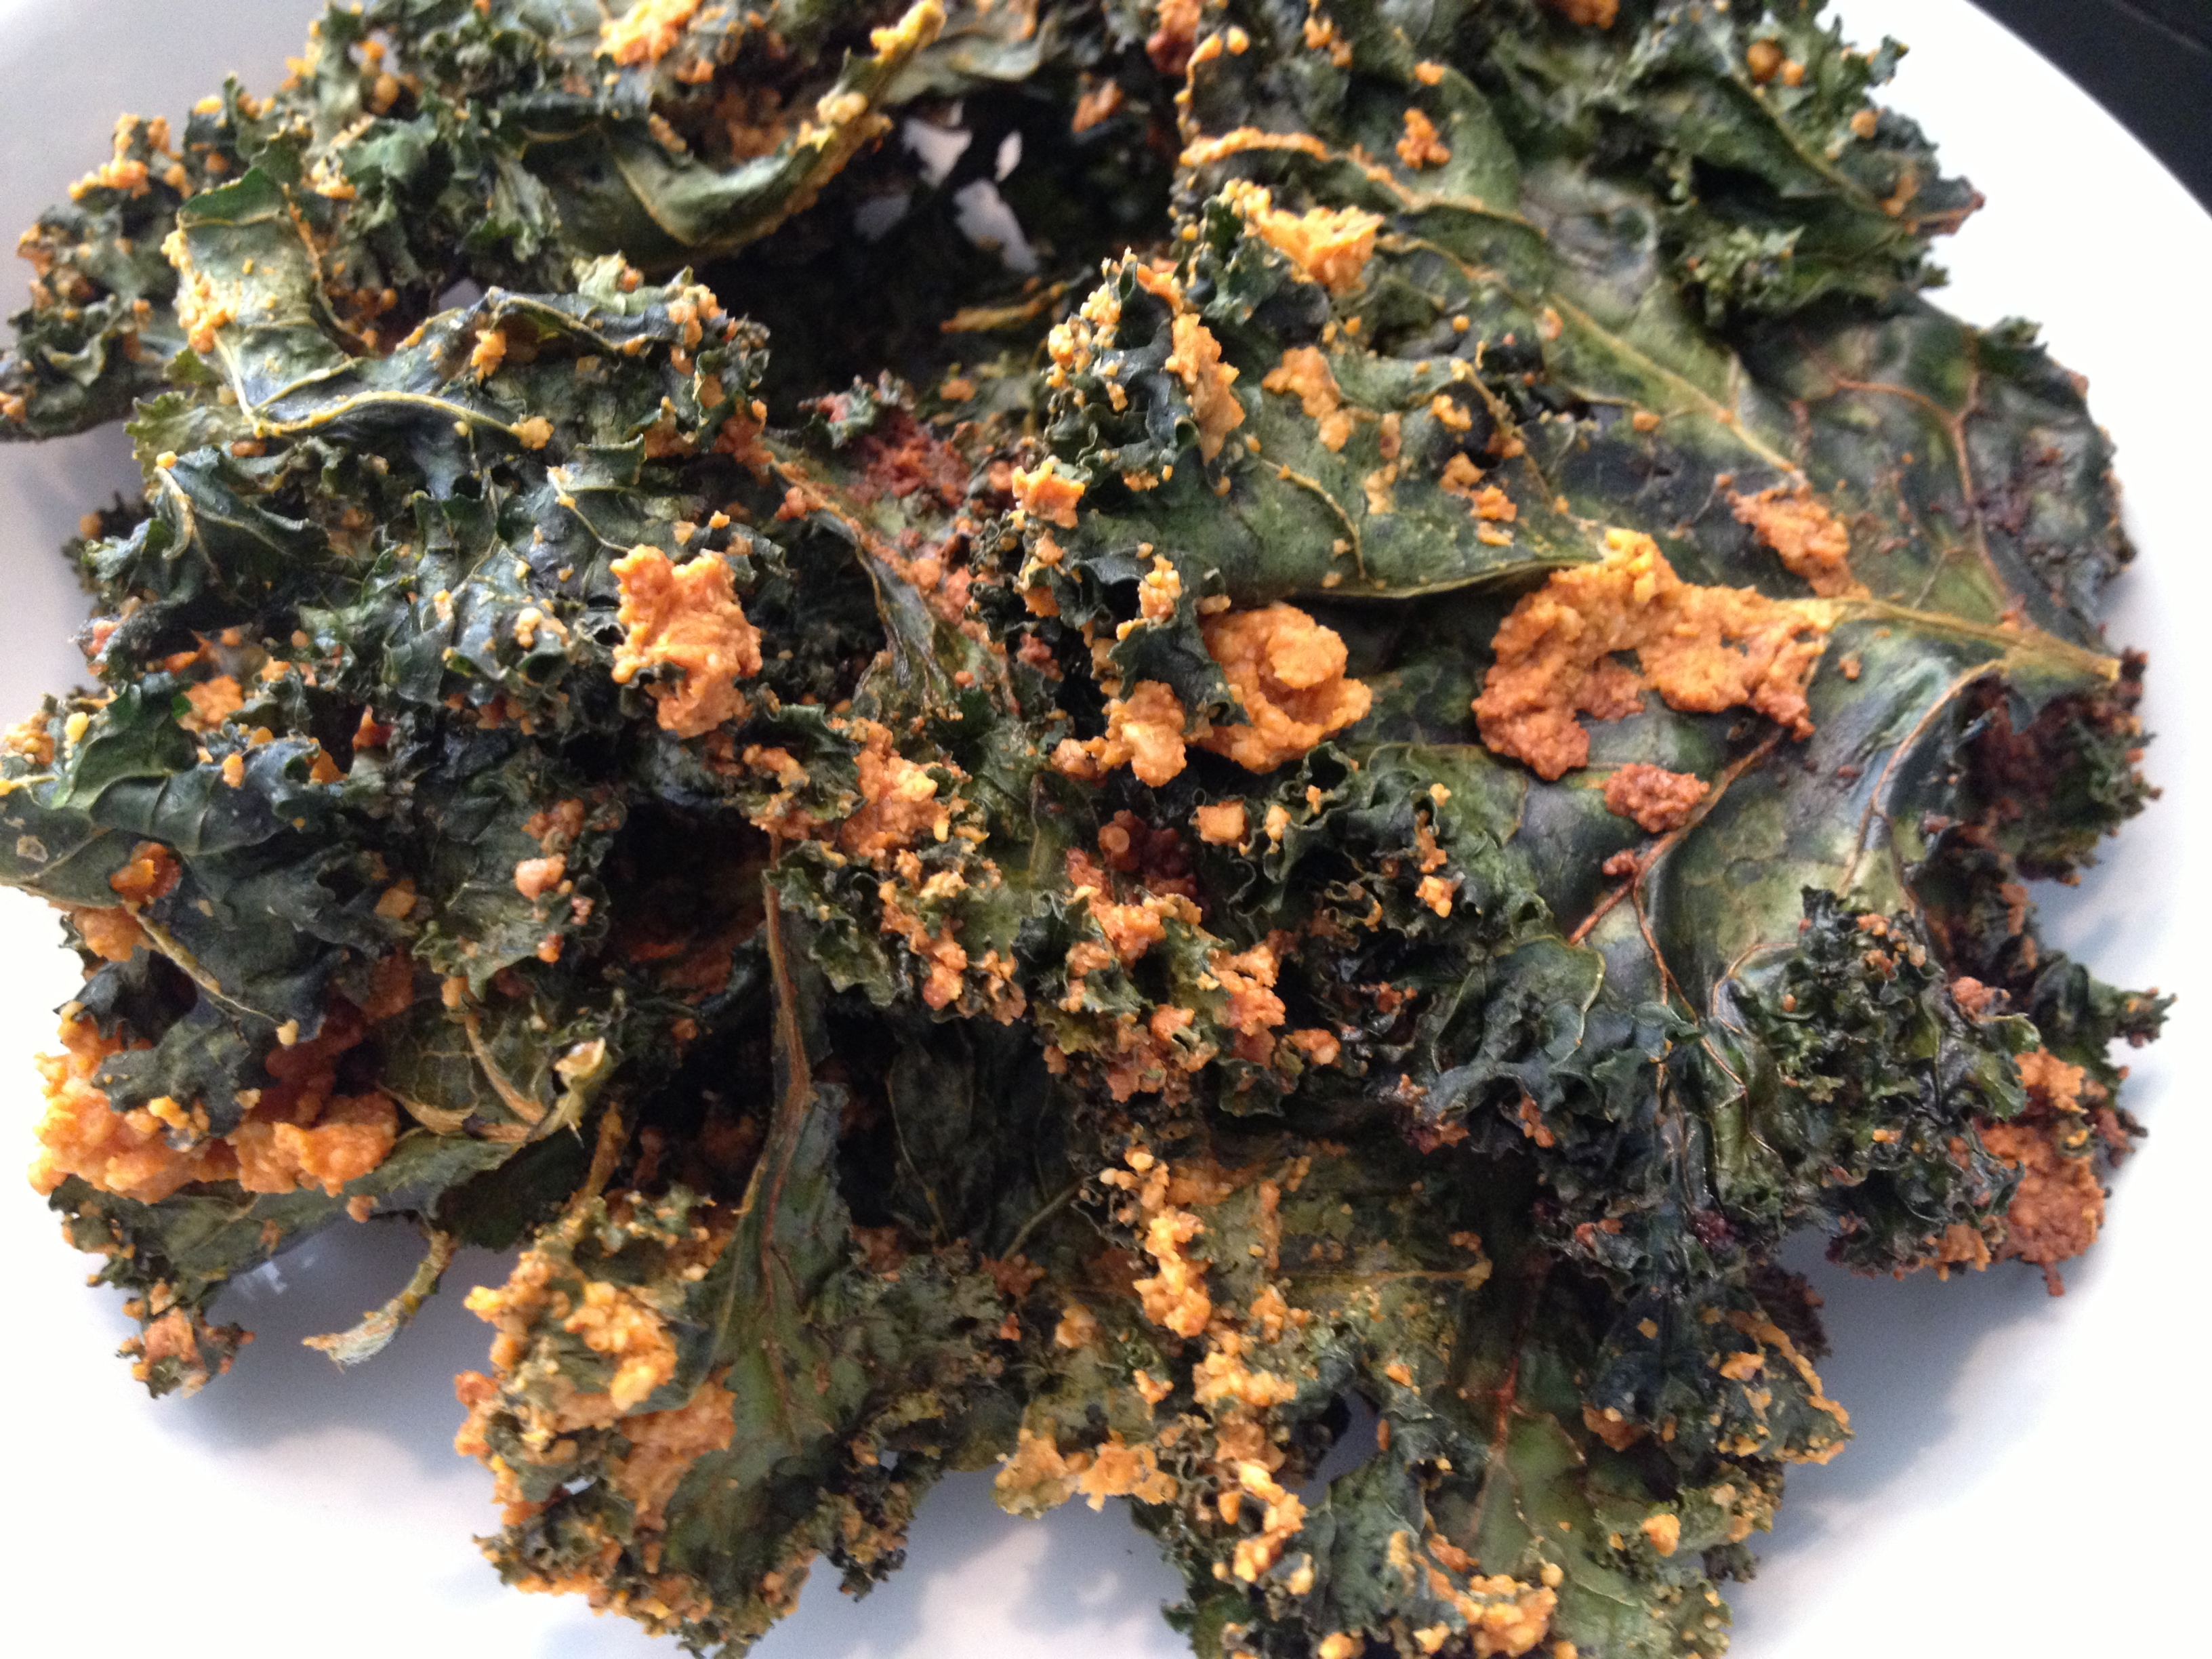 Spicy Cheese Kale Chips